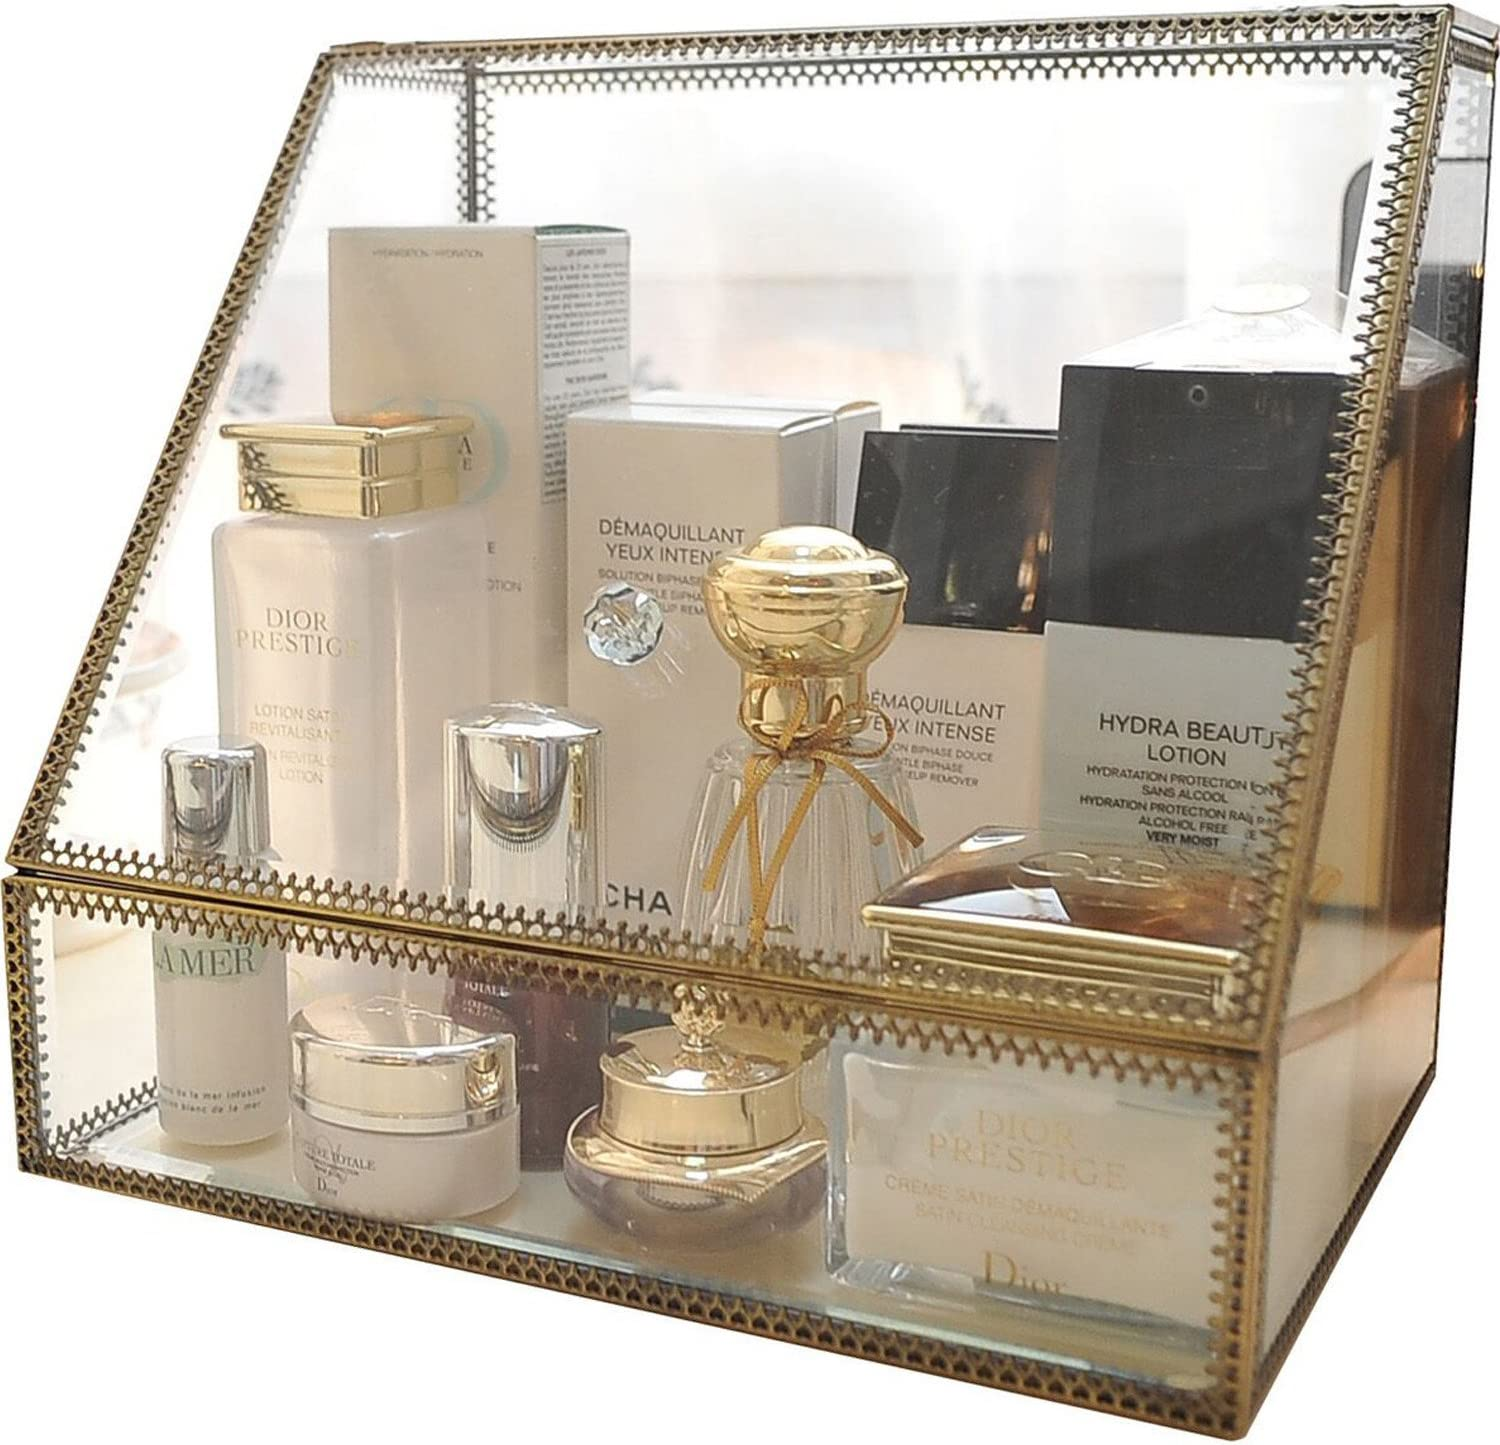 Amazon Com Hersoo Large Cosmetics Makeup Organizer Transparent Bathroom Accessories Storage Glass Display With Slanted Front Open Lid Cosmetic Stackable Holder For Makeup Brushes Perfumes Skincare Home Kitchen